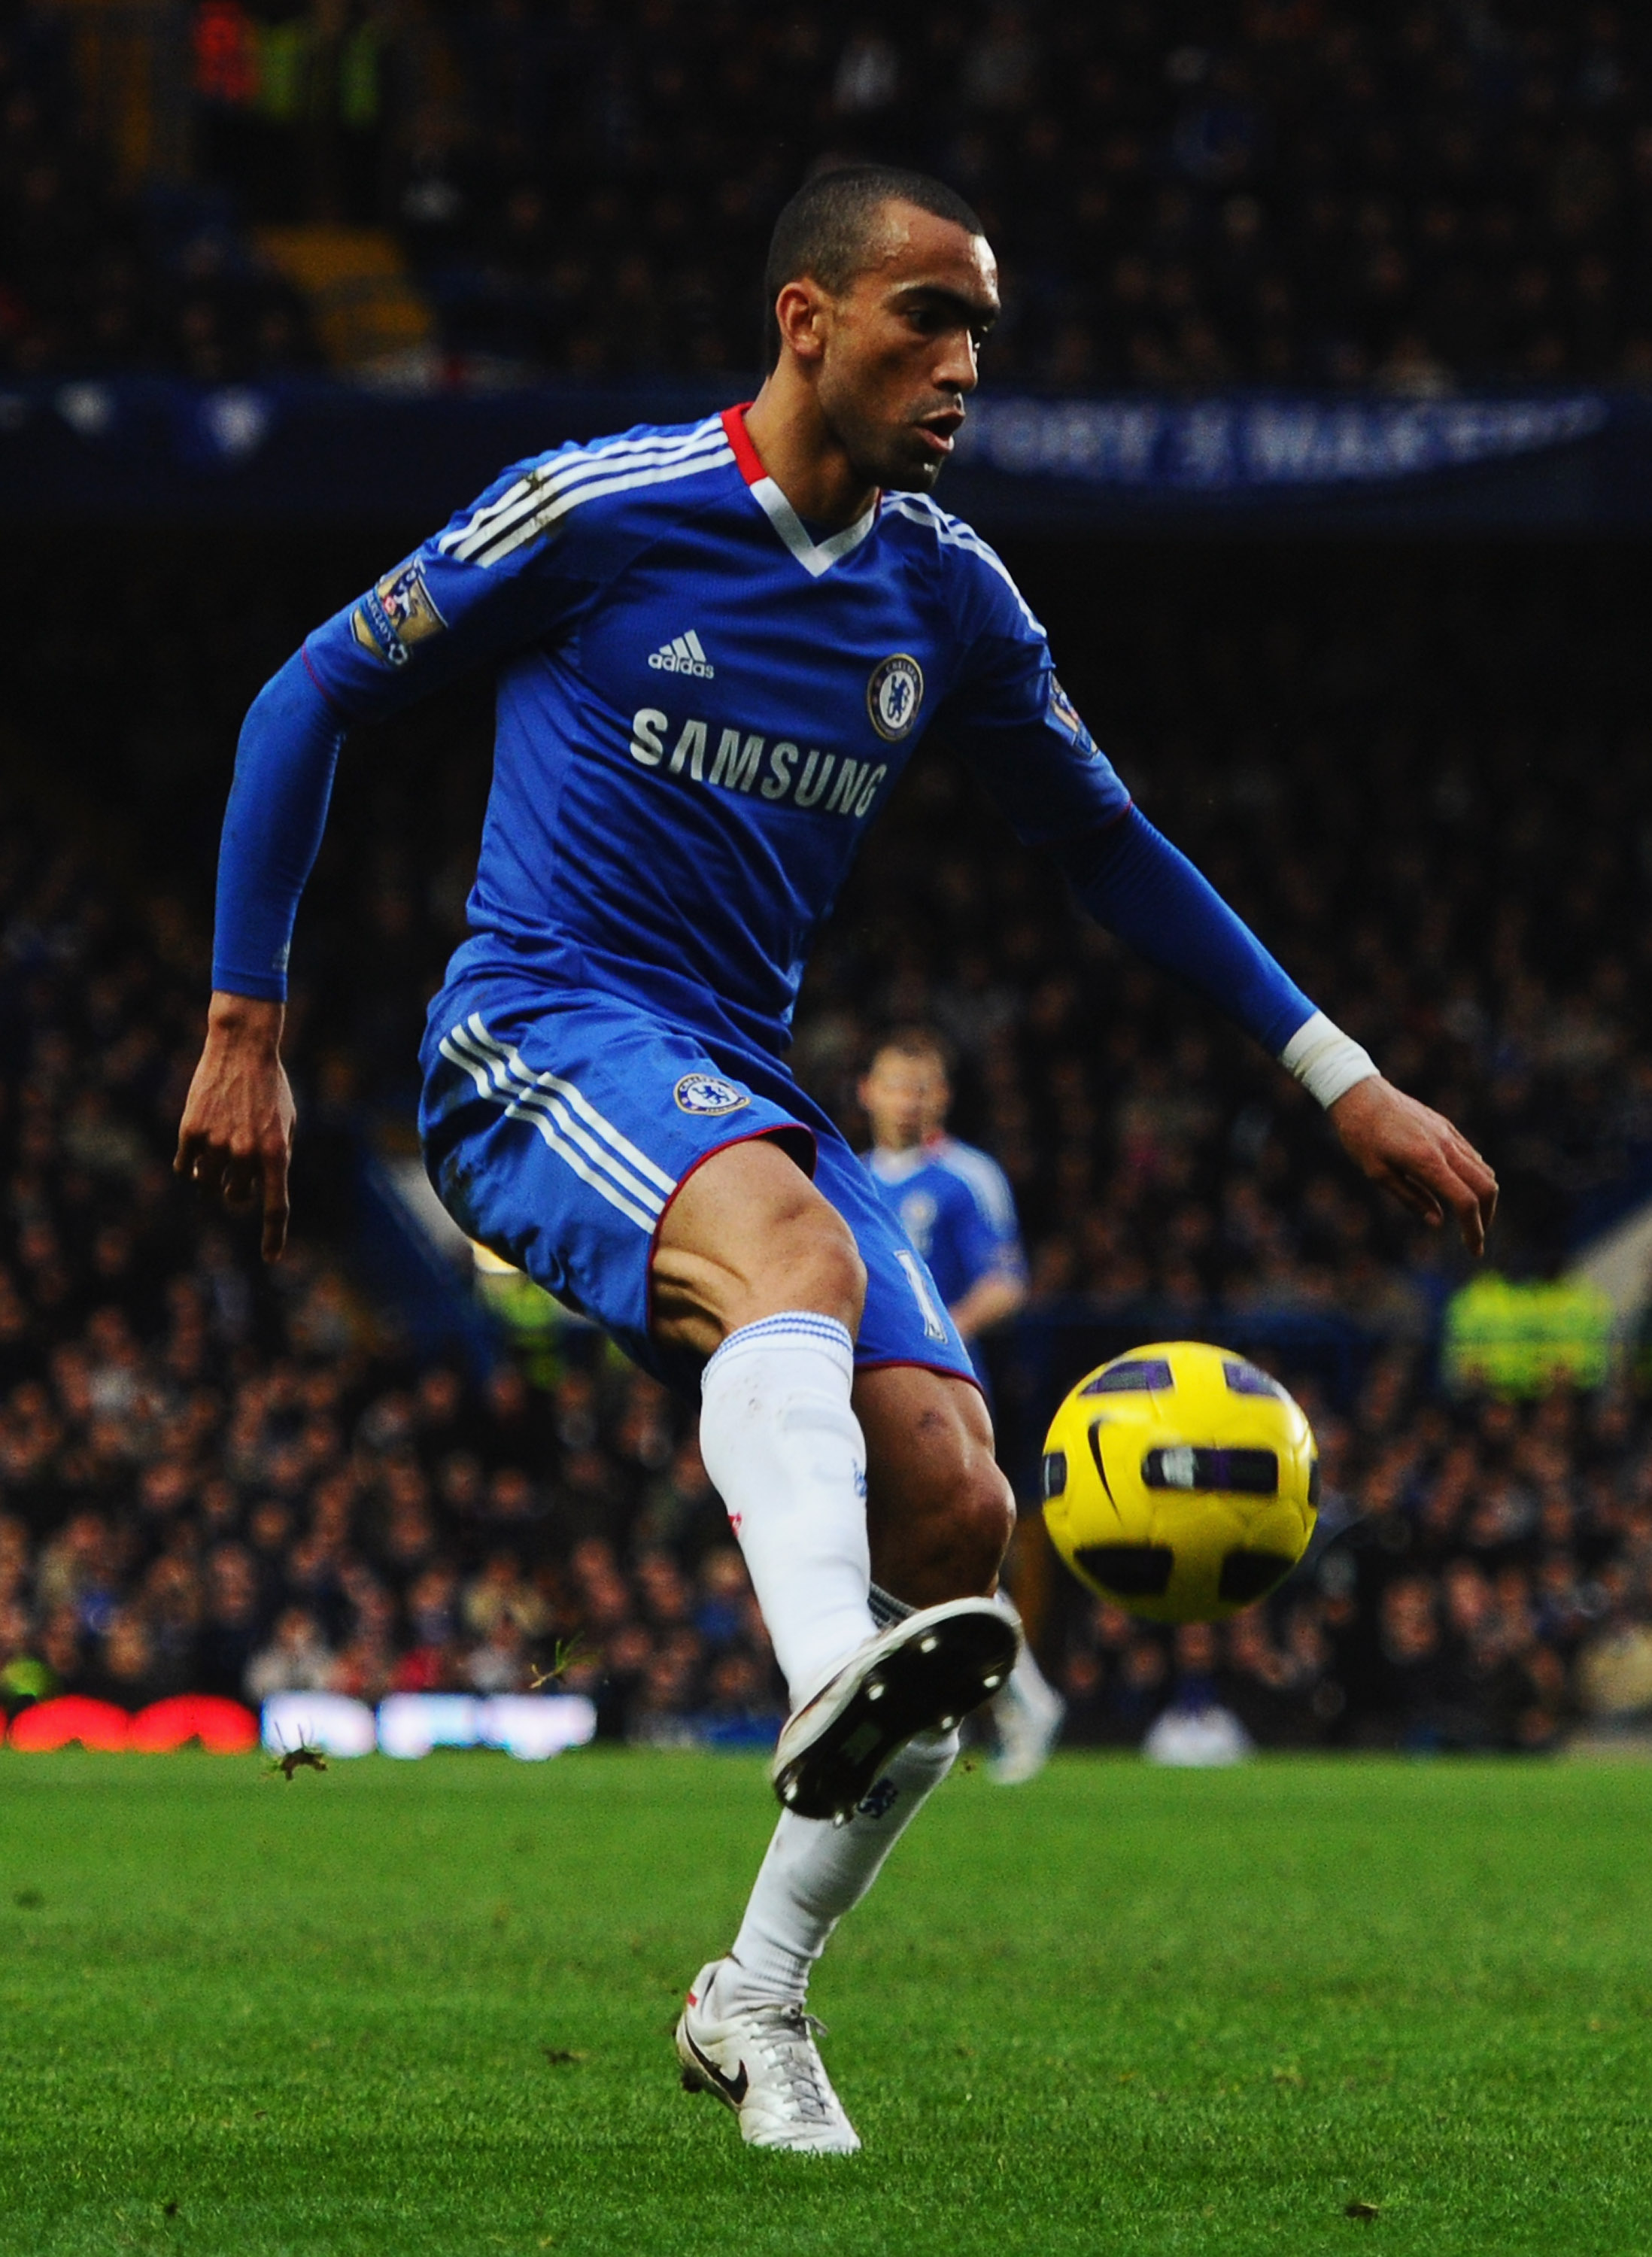 LONDON, ENGLAND - JANUARY 15:  Jose Bosingwa of Chelsea in action during the Barclays Premier League match between Chelsea and Blackburn Rovers at Stamford Bridge on January 15, 2011 in London, England.  (Photo by Mike Hewitt/Getty Images)